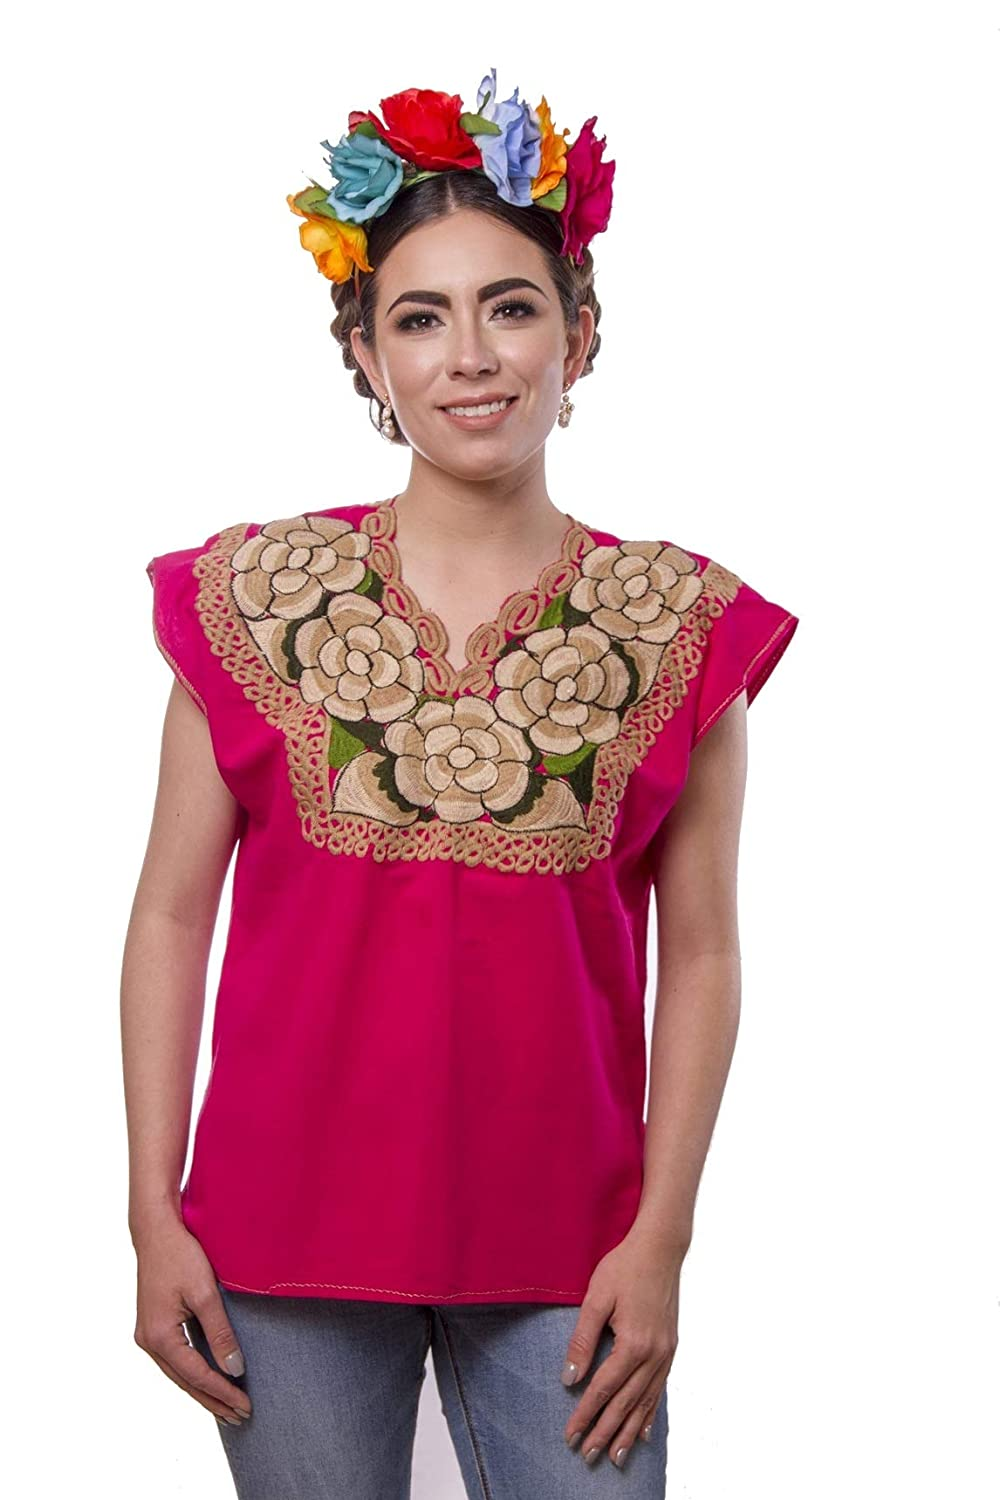 Authentic Embroidered Purple Mexican Chiapas Cotton Tunic Blouse - DeluxeAdultCostumes.com